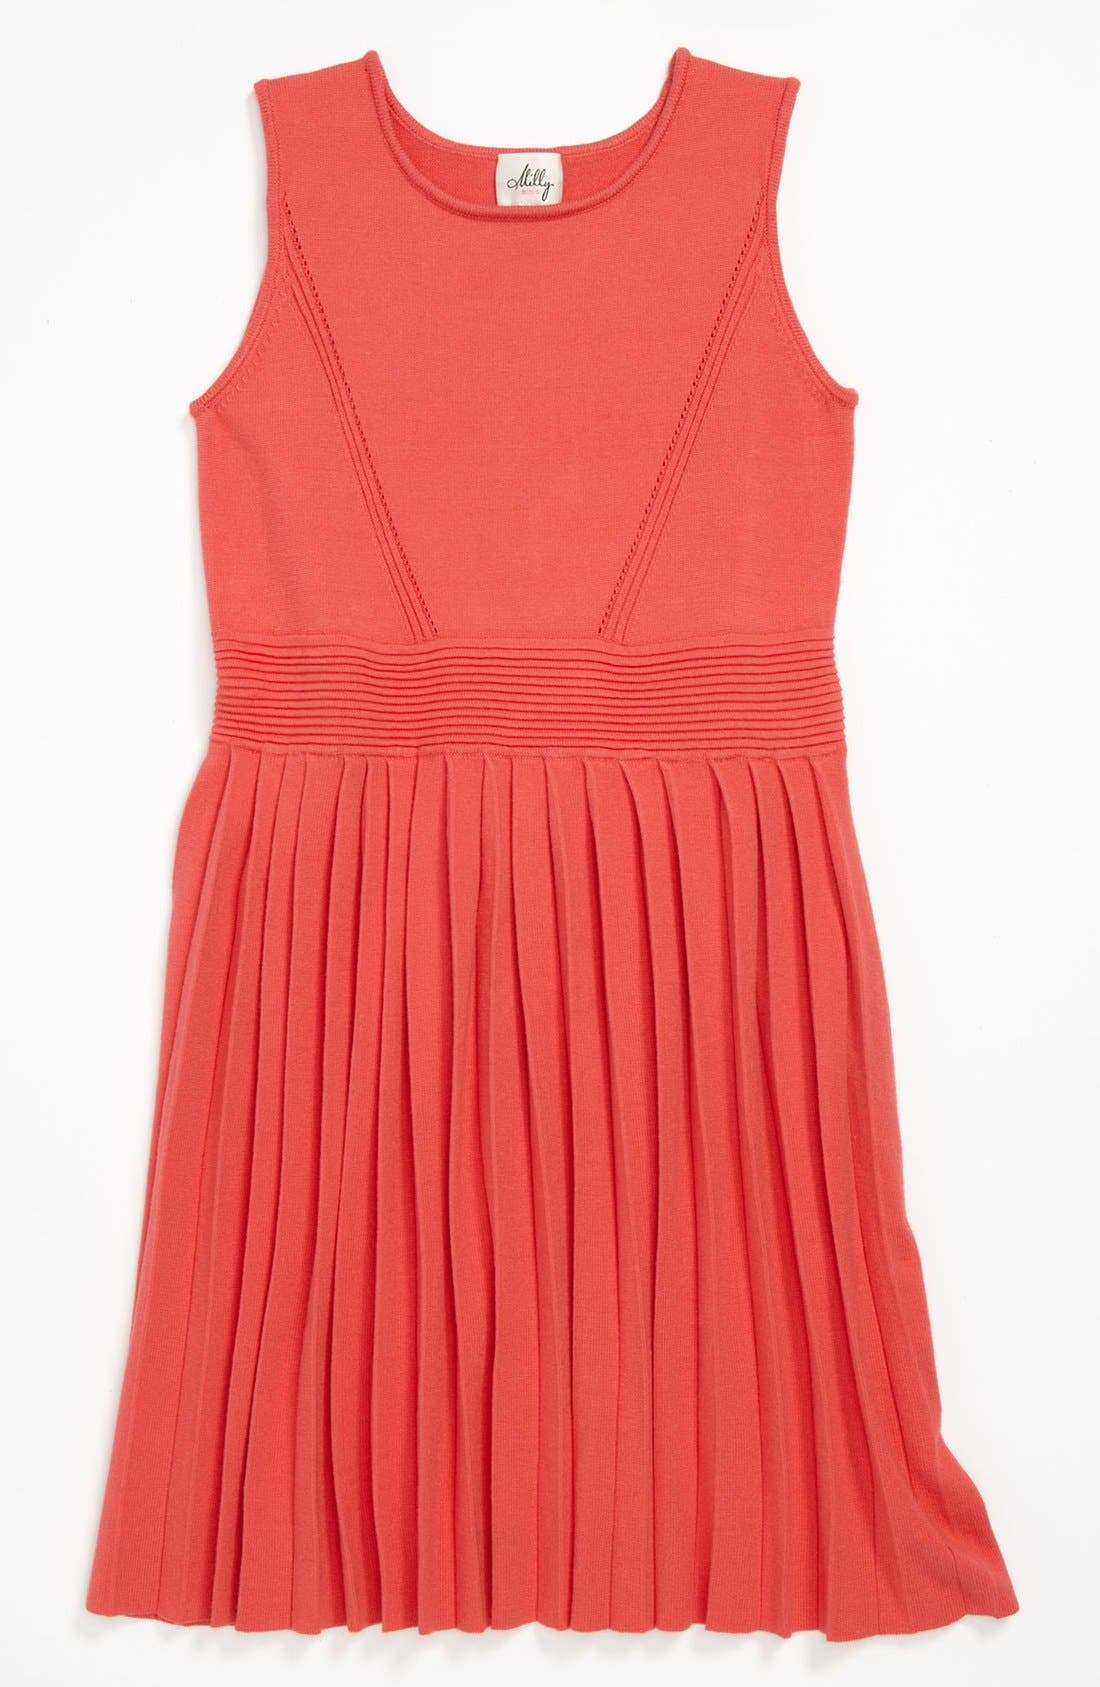 Alternate Image 1 Selected - Milly Minis Pleated Dress (Little Girls & Big Girls)